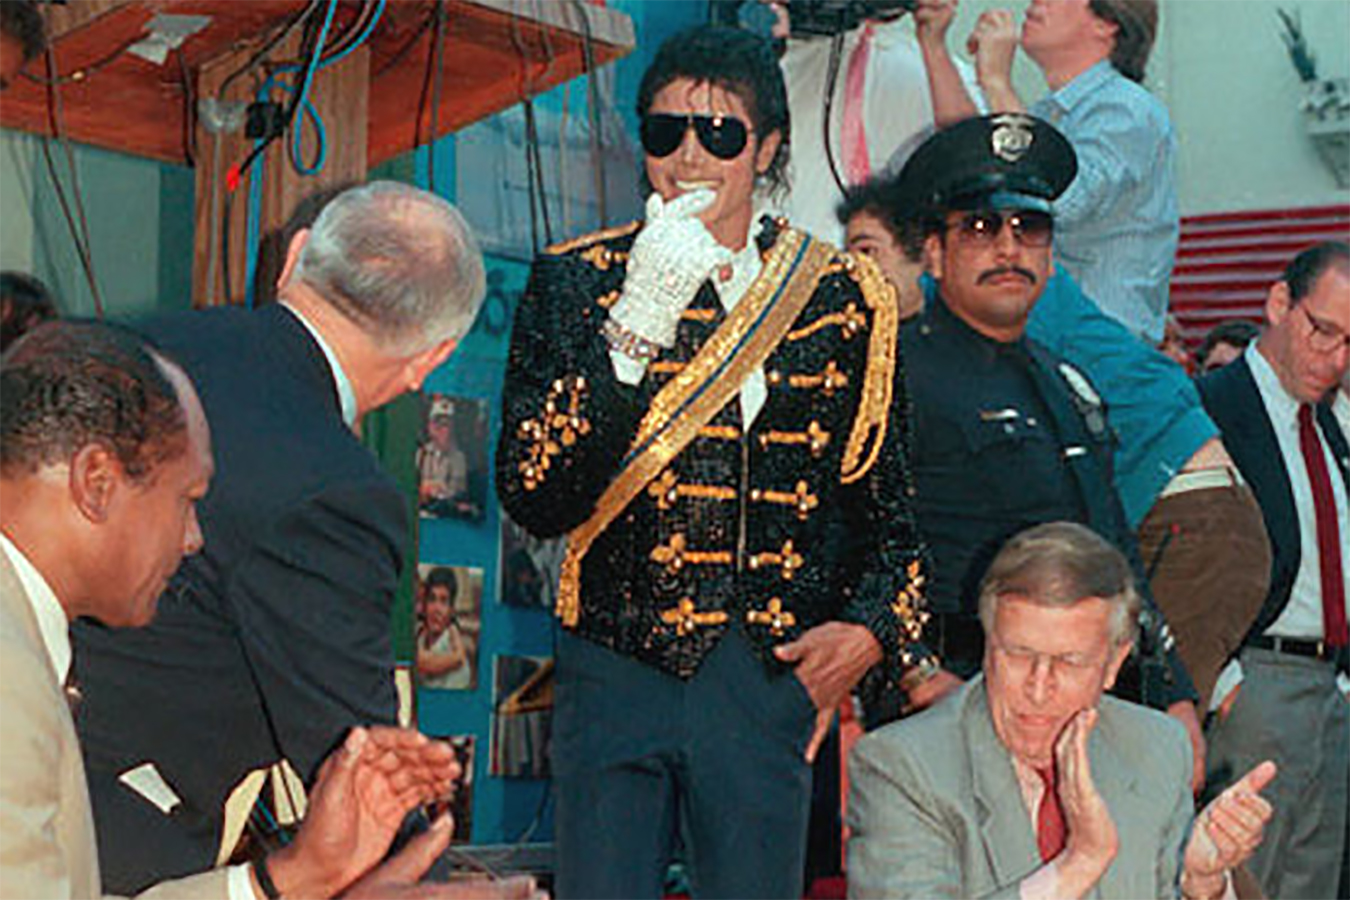 MJ Honored With Solo Star On Hollywood Walk of Fame In 1984